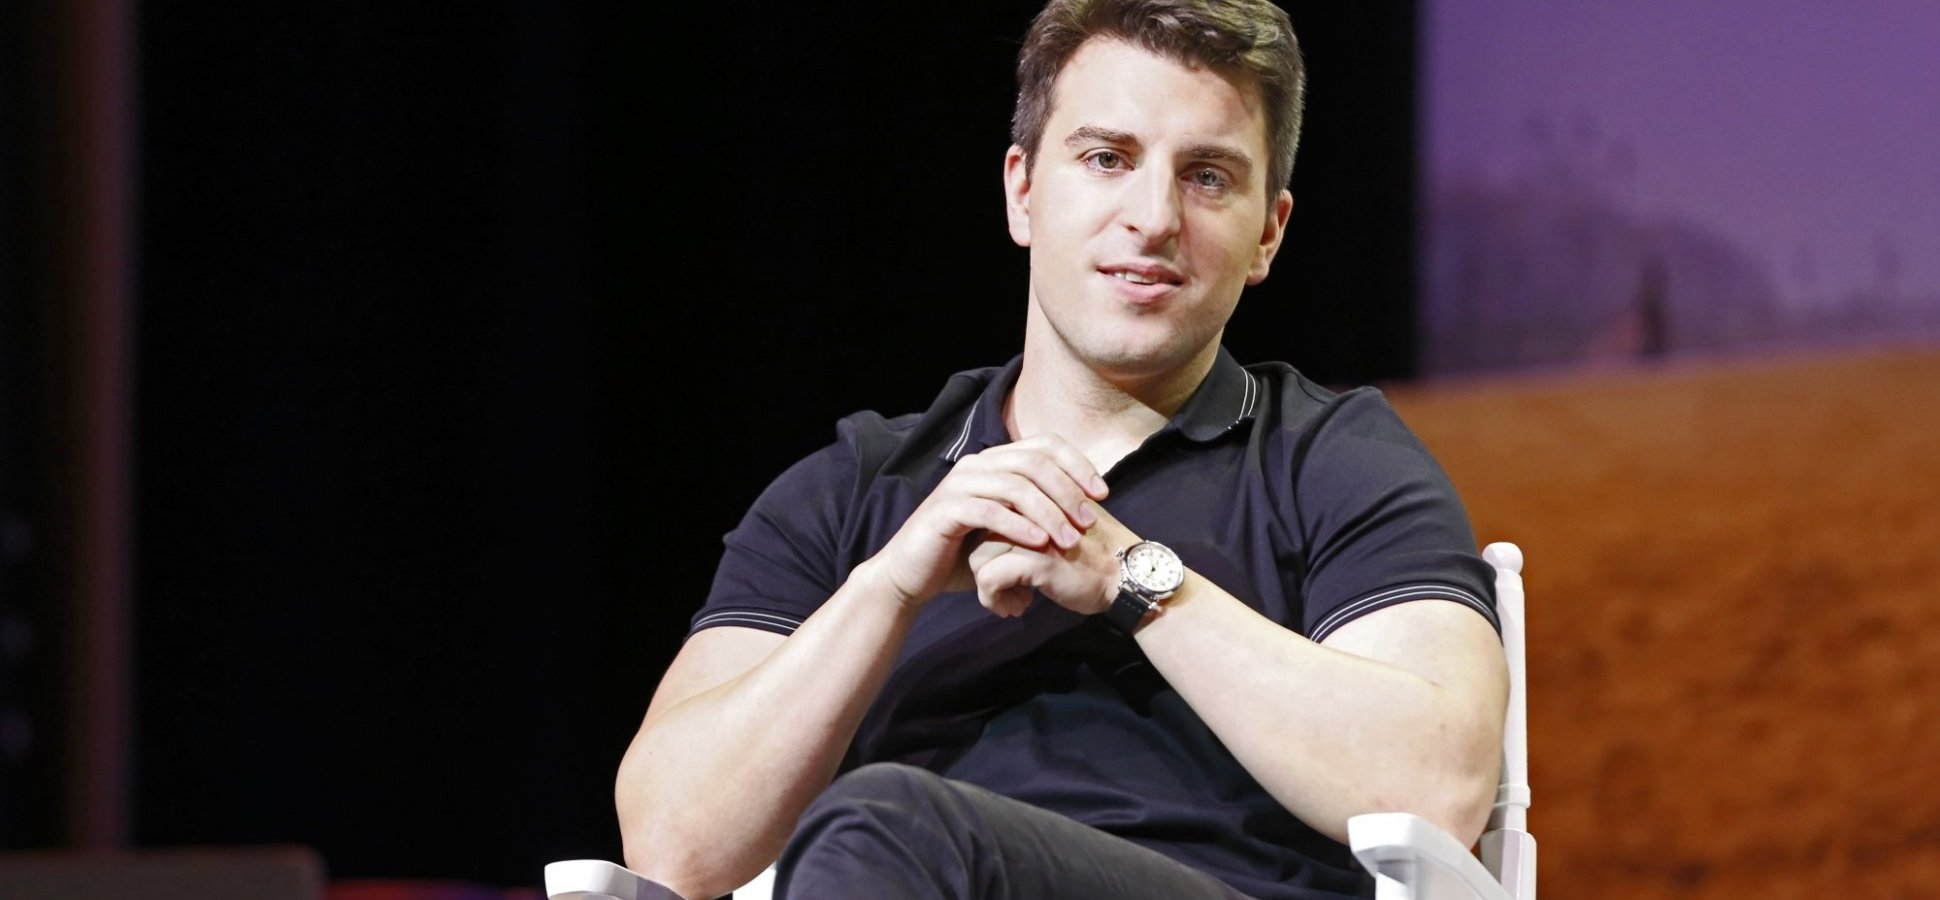 Airbnb Has Announced It's Planning an IPO in 2020